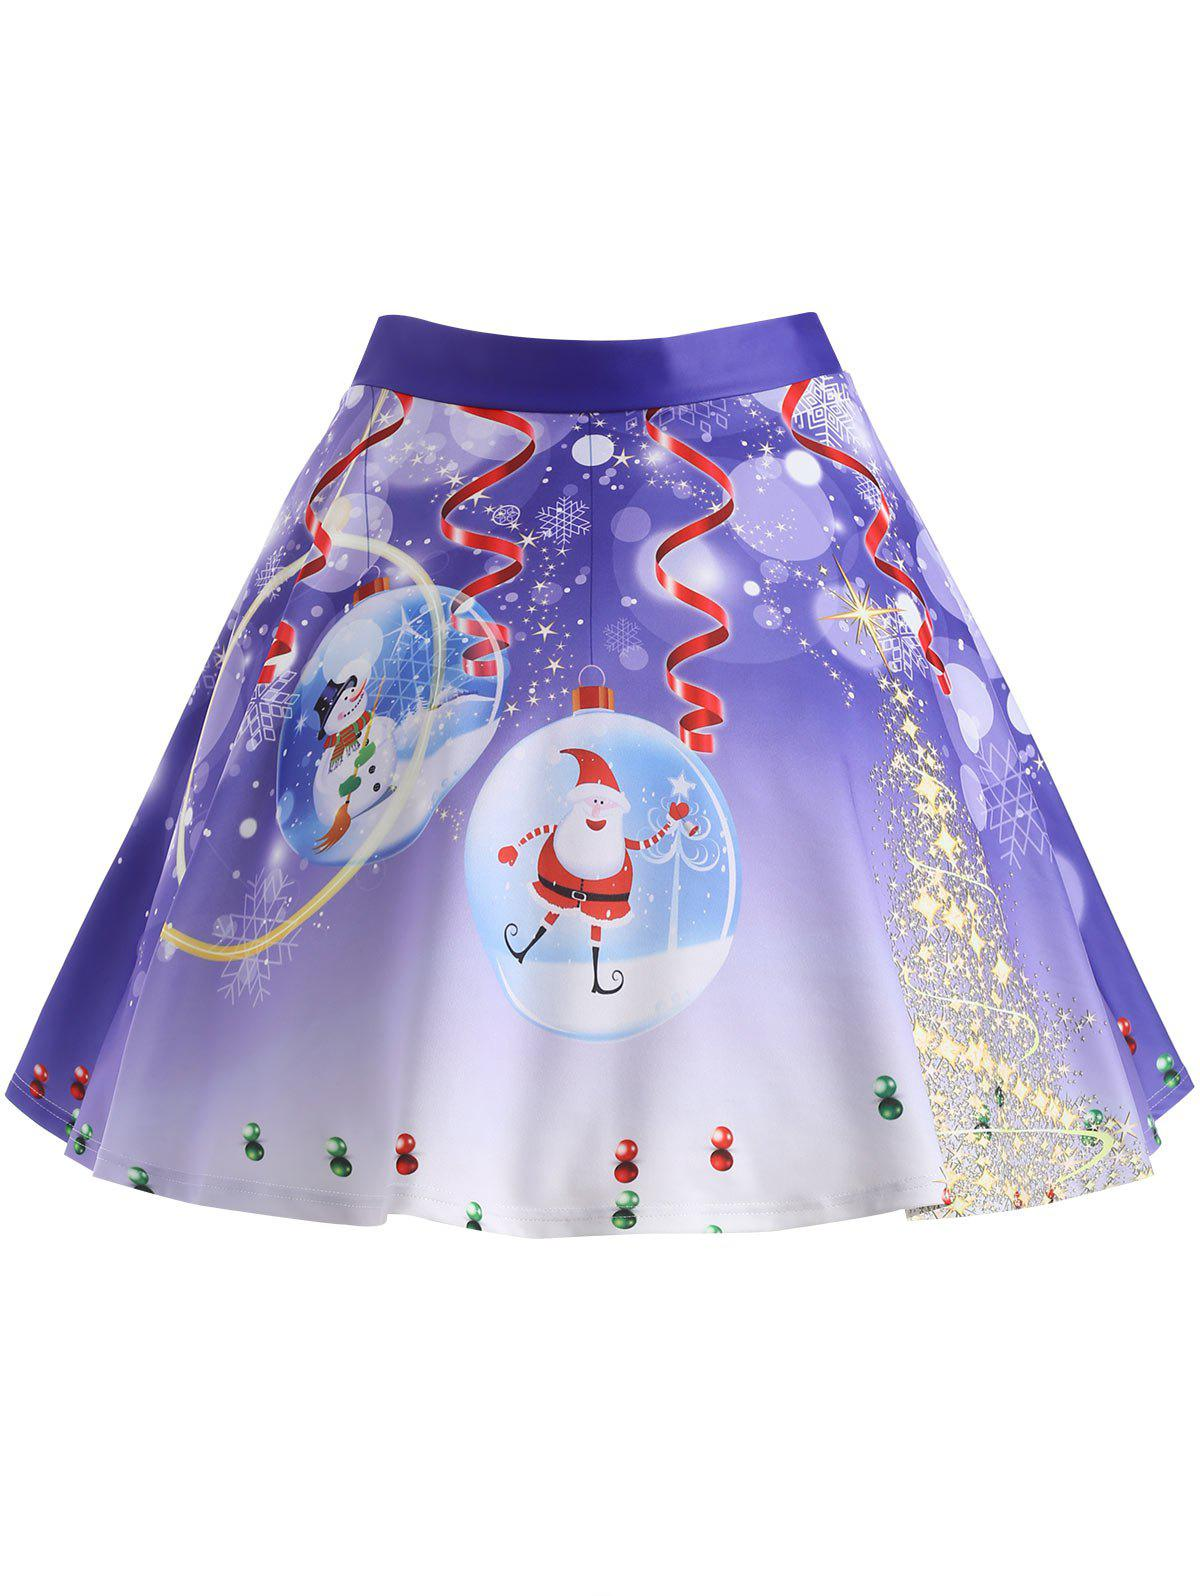 Christmas Tree Santa Claus Print Plus Size SkirtWOMEN<br><br>Size: 2XL; Color: PURPLE; Material: Polyester; Length: Knee-Length; Silhouette: A-Line; Pattern Type: Plant,Star; Season: Winter; With Belt: No; Weight: 0.3750kg; Package Contents: 1 x Skirt;